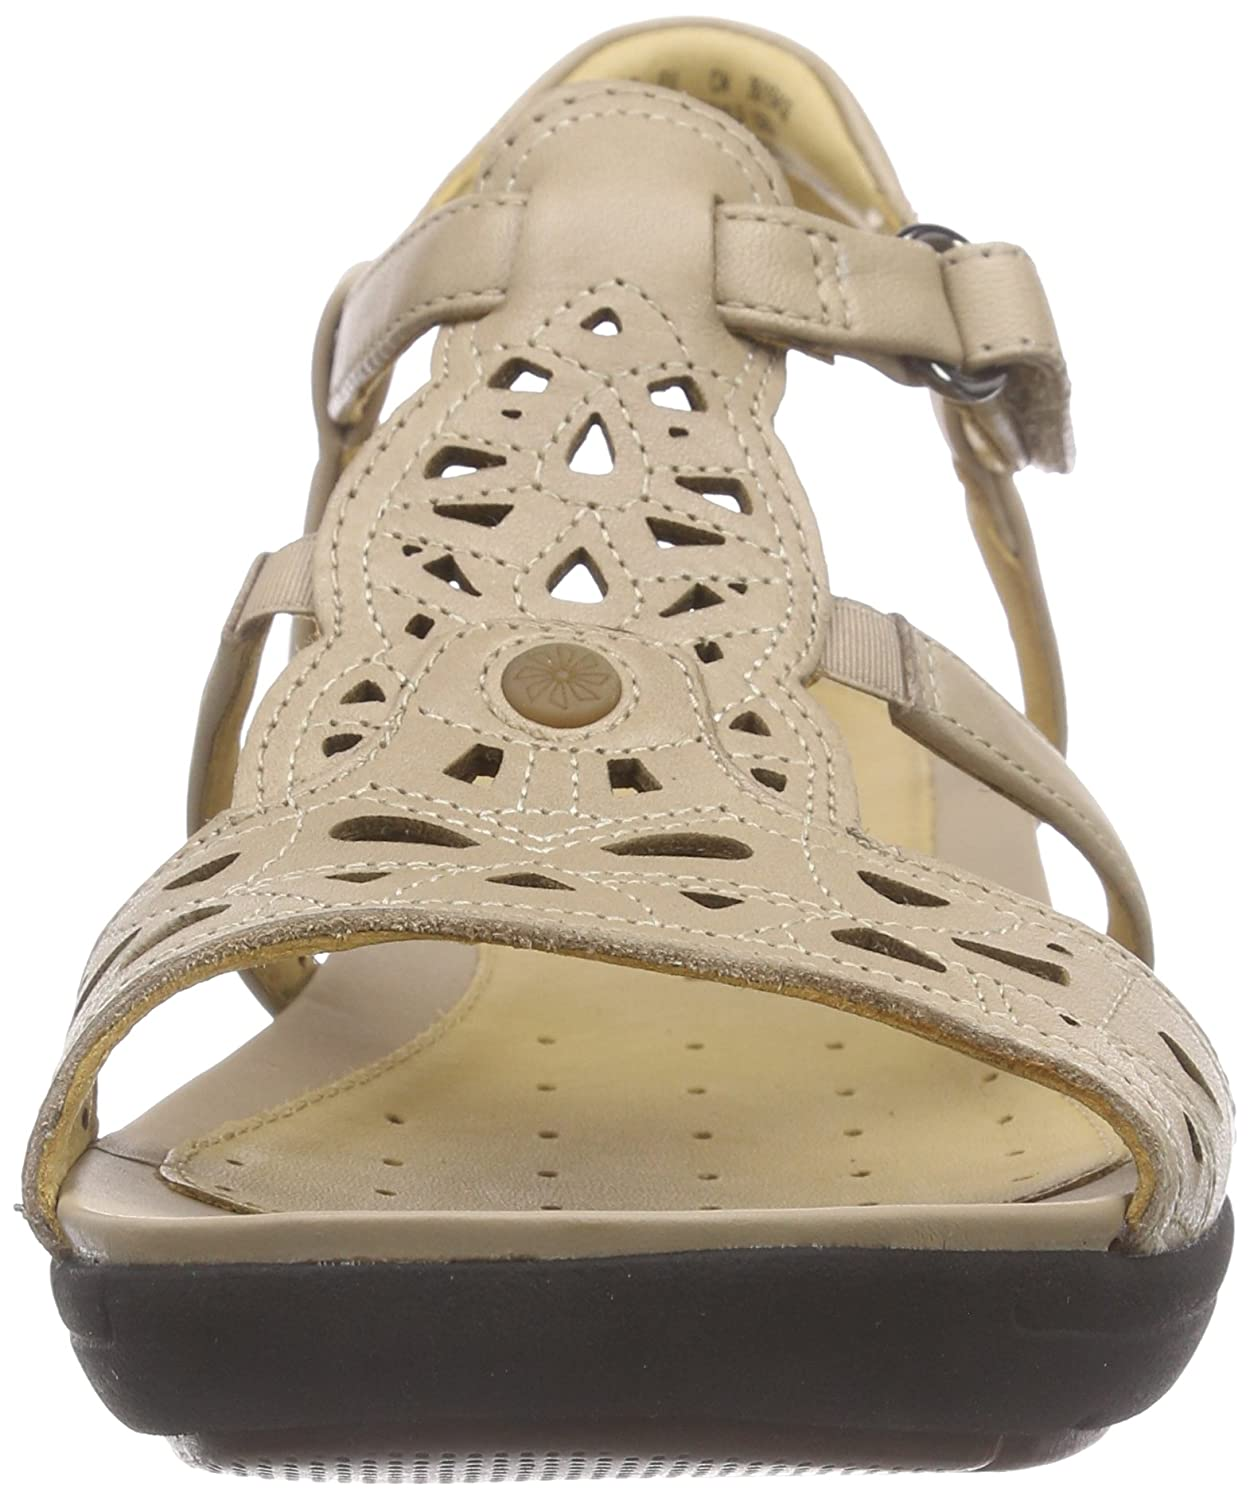 982180f07f0 Clarks Women s Un Valencia Sand Brown Leather Fashion Sandals - 9 UK India  (43 EU)  Buy Online at Low Prices in India - Amazon.in